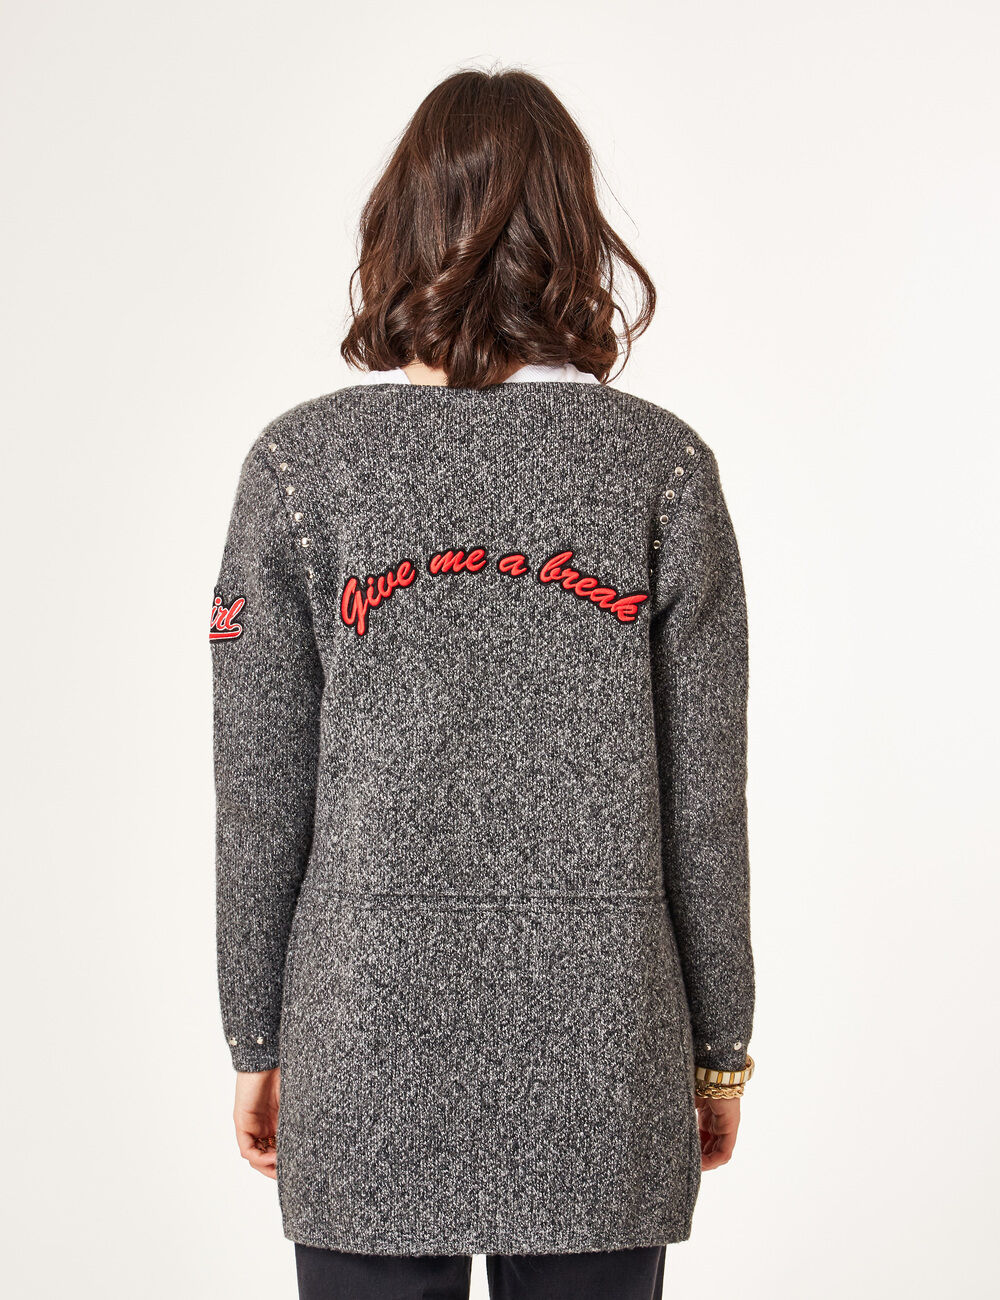 ... Charcoal grey marl cardigan with patch and stud details